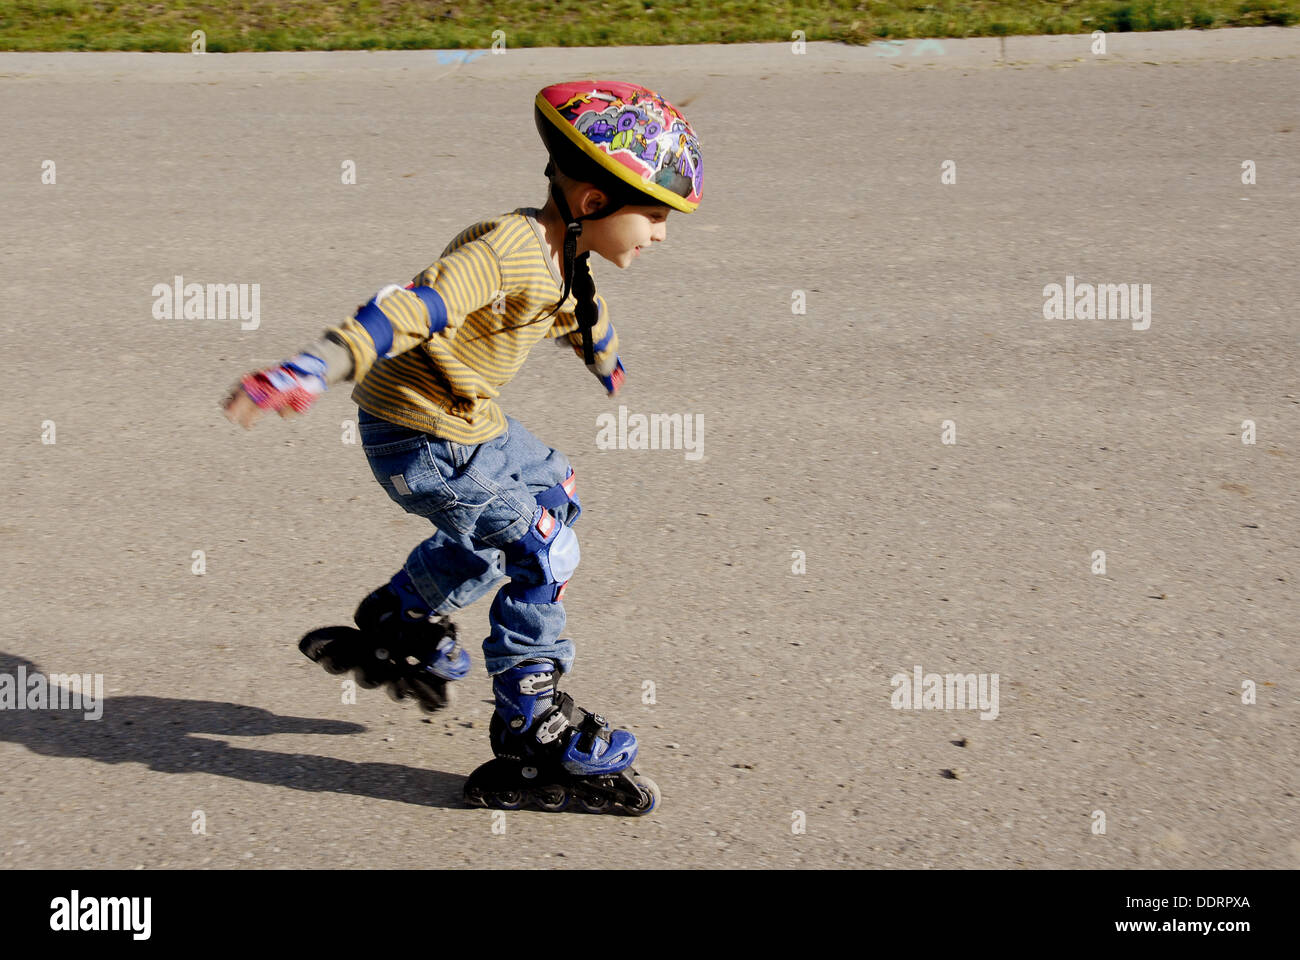 Roller skating quebec city - 5 Year Old Boy Learns How To Roller Blade Wearing Protective Safety Equipment Stock Image